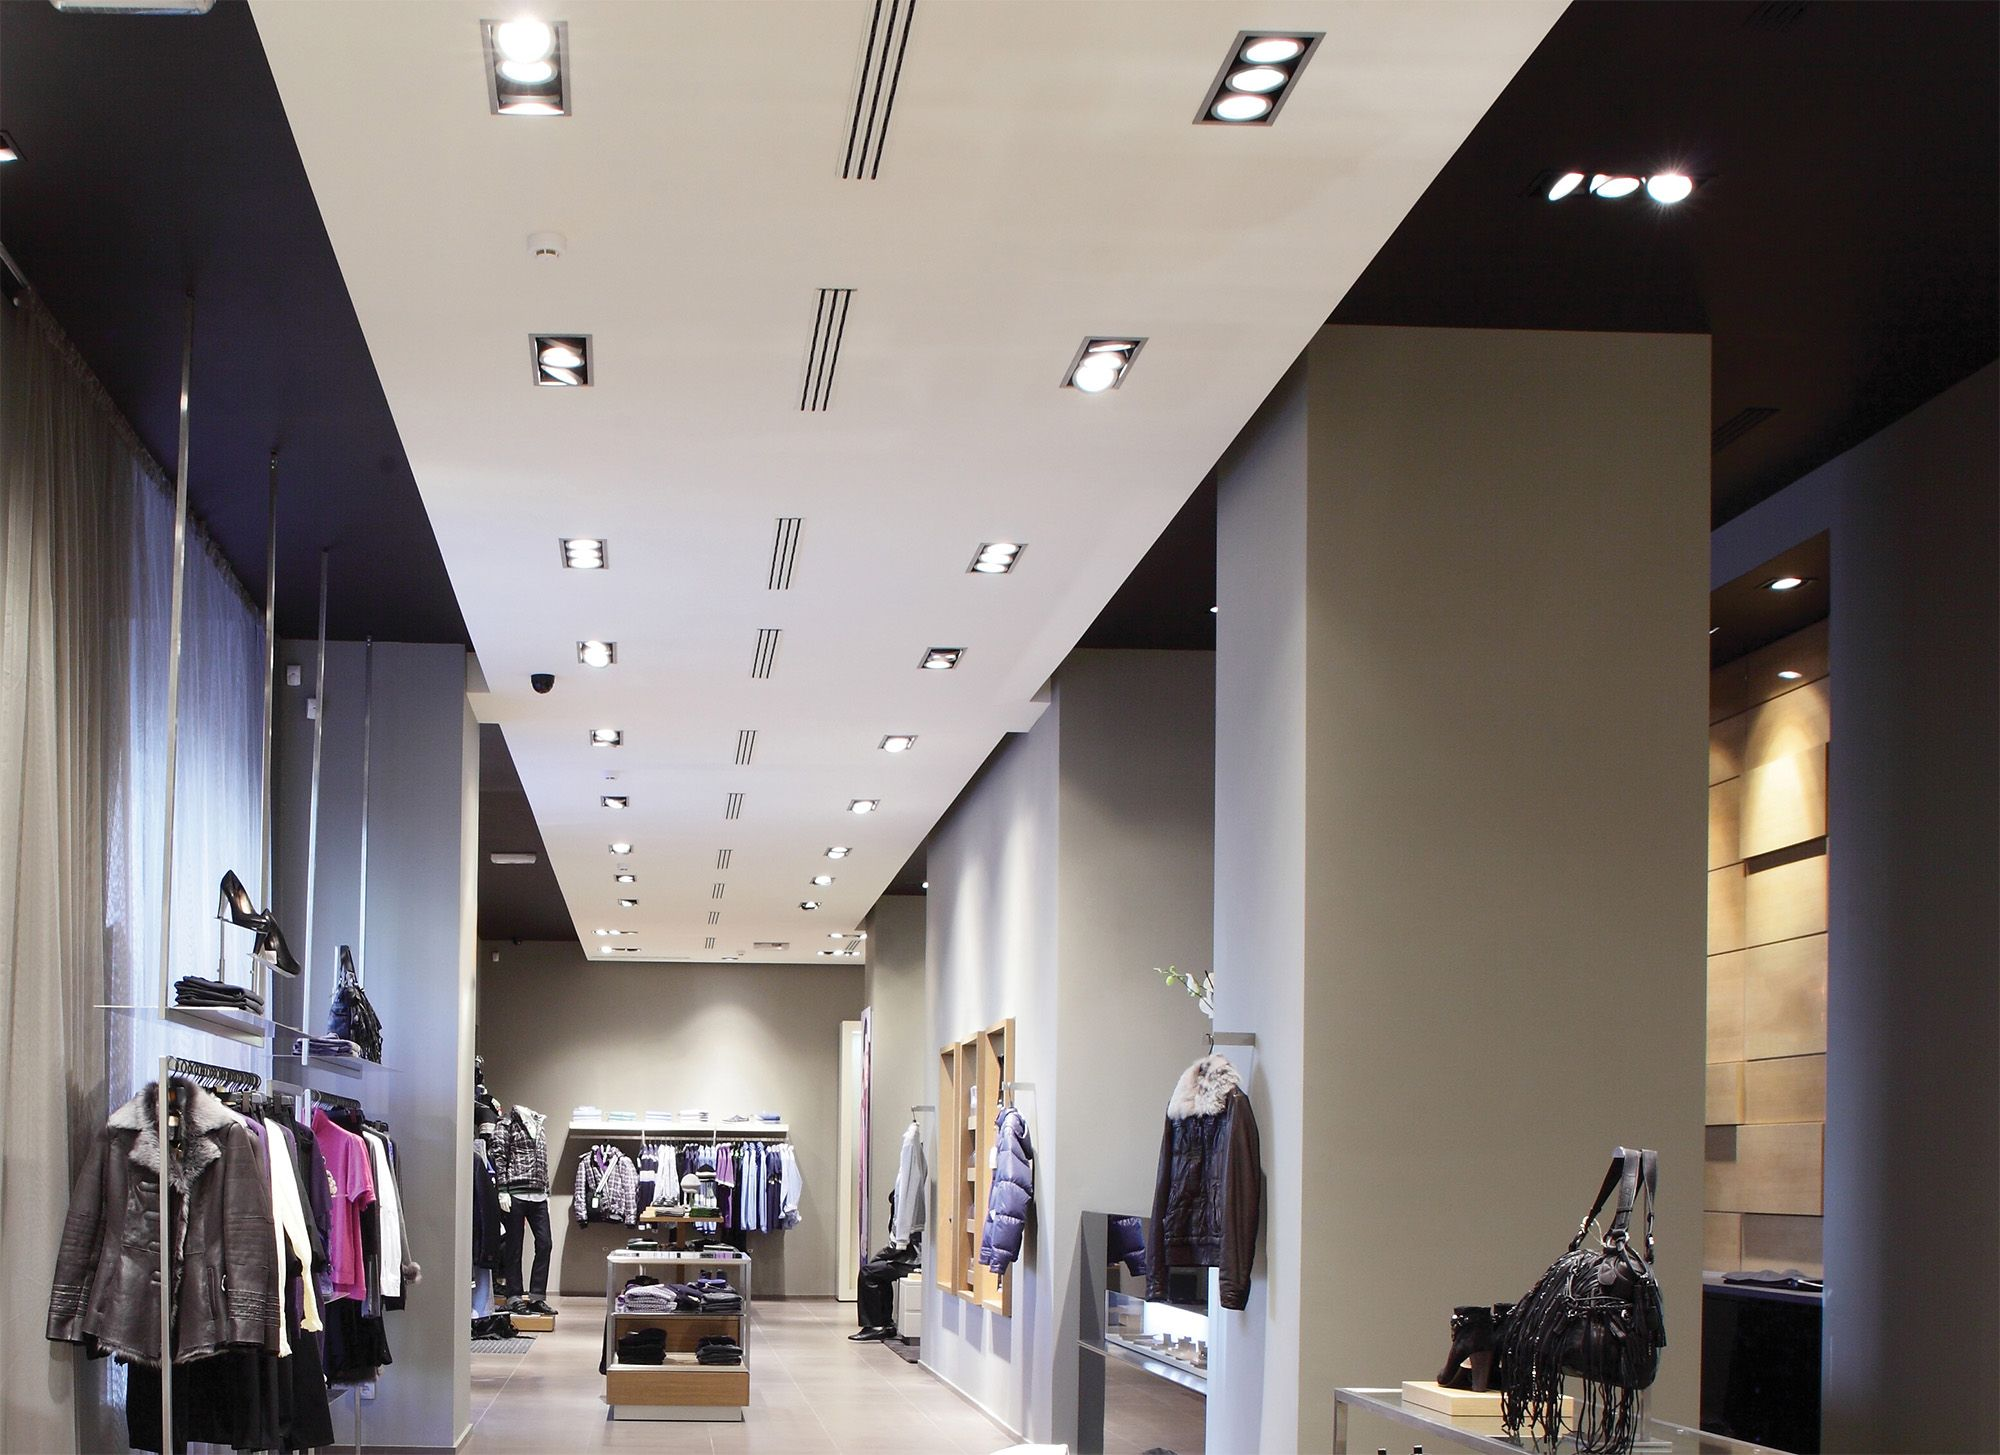 Use multiple recessed lighting for retail spaces interior use multiple recessed lighting for retail spaces interior decorating lighting design aloadofball Images